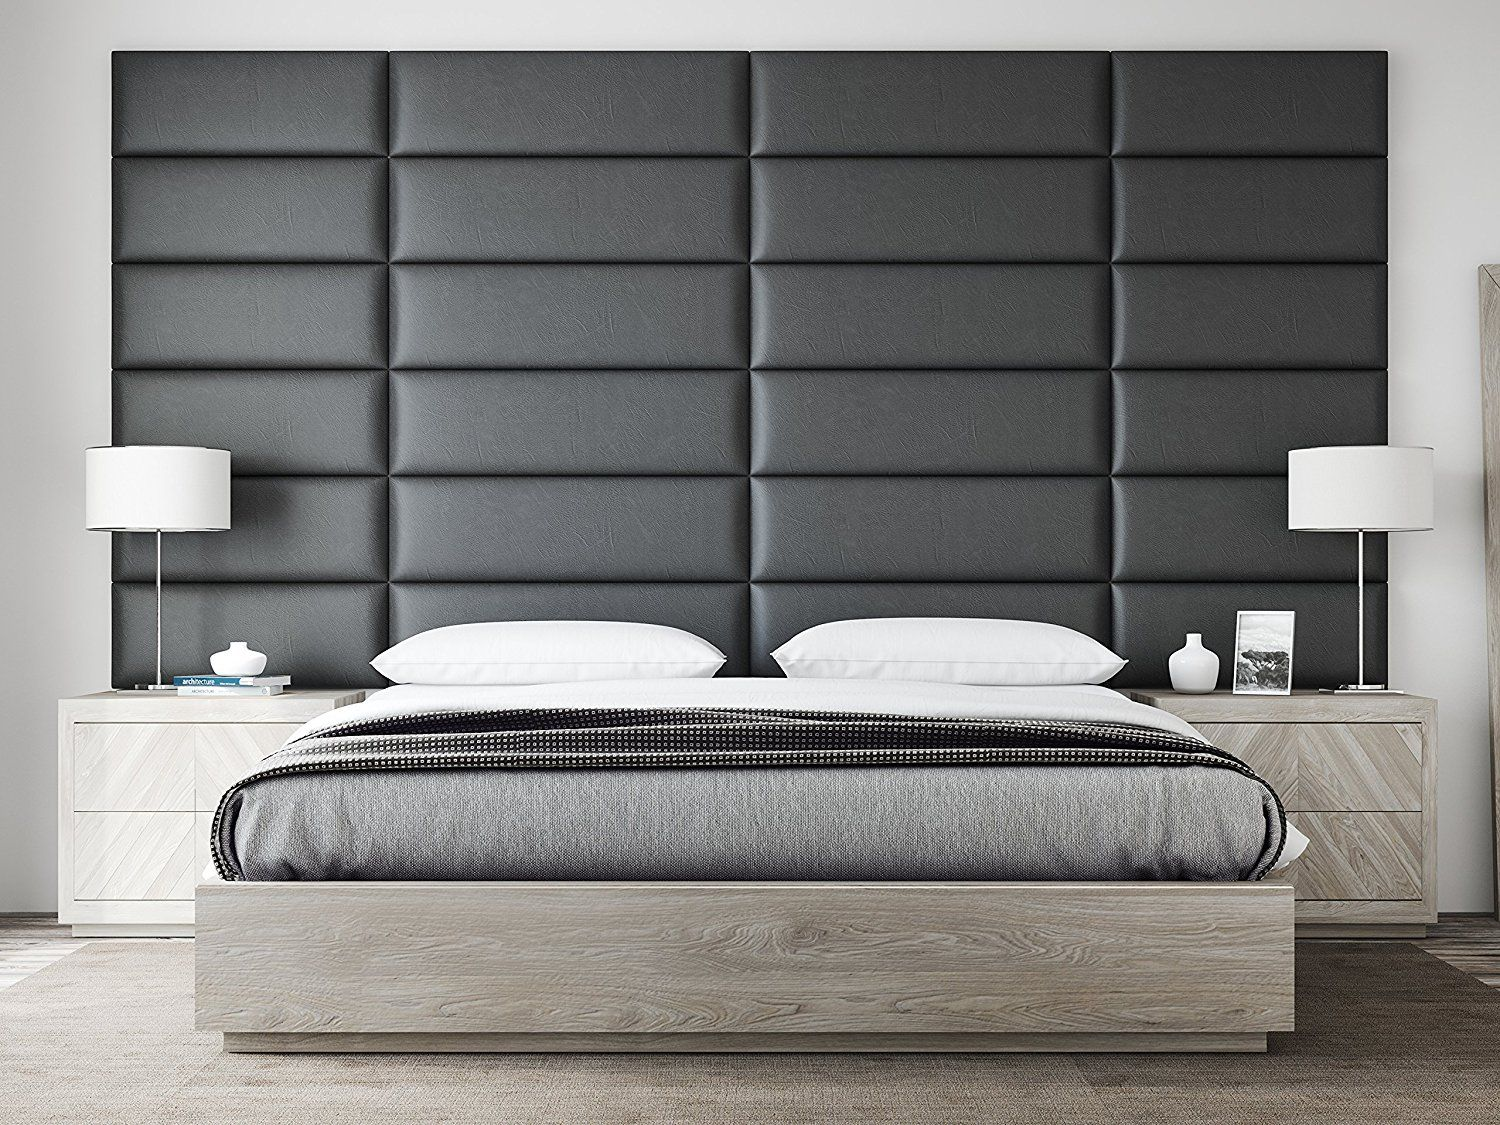 Revamping Your Headboard With Wall Panel Is A Simple Way To Add Pizzazz To The Bedroom Layout Upholstered Walls Upholstered Headboard Upholstered Wall Panels